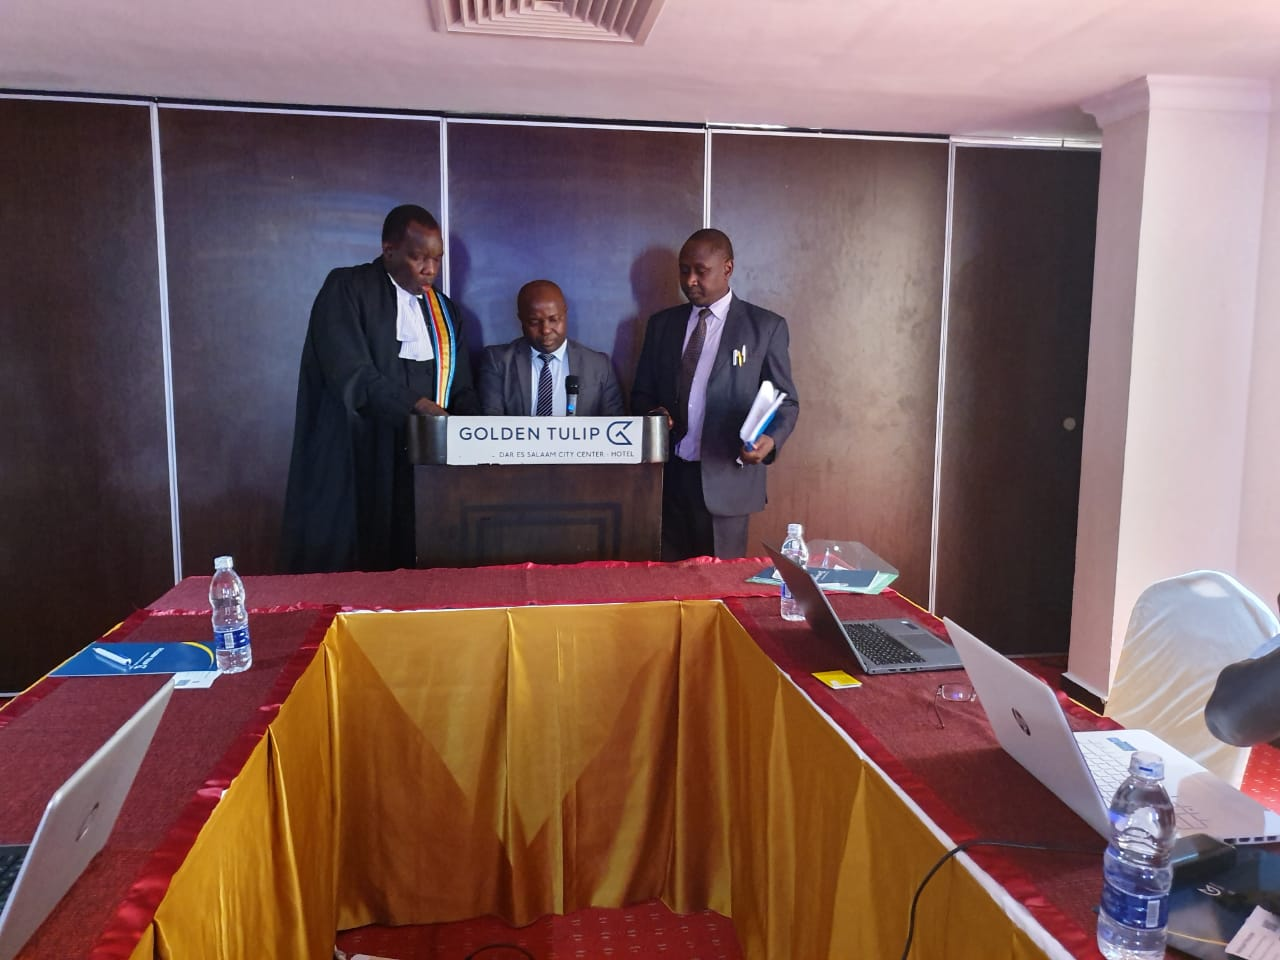 The Counsel to the Community, Dr. Anthony Kafumbe (on the right), the Registrar of the East African Court of Justice, Mr. Yufnalis N. Okubo (on the left) and Dr. John K. Mduma (centre) at the swearing in ceremony.